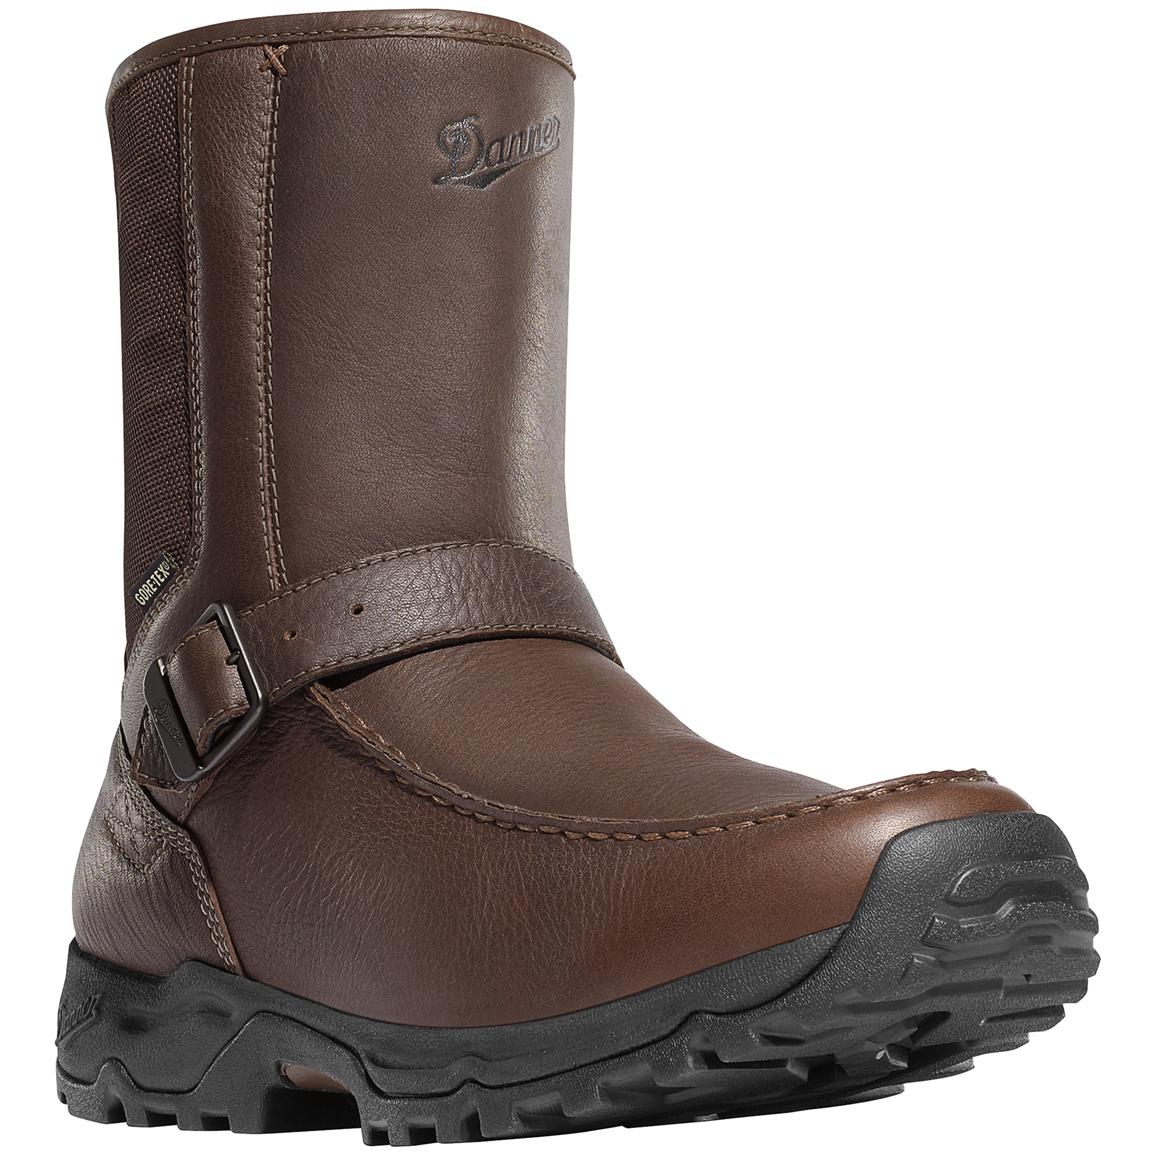 Danner 174 10 Quot Fowler Gore Tex 174 Hunting Boots Brown 284611